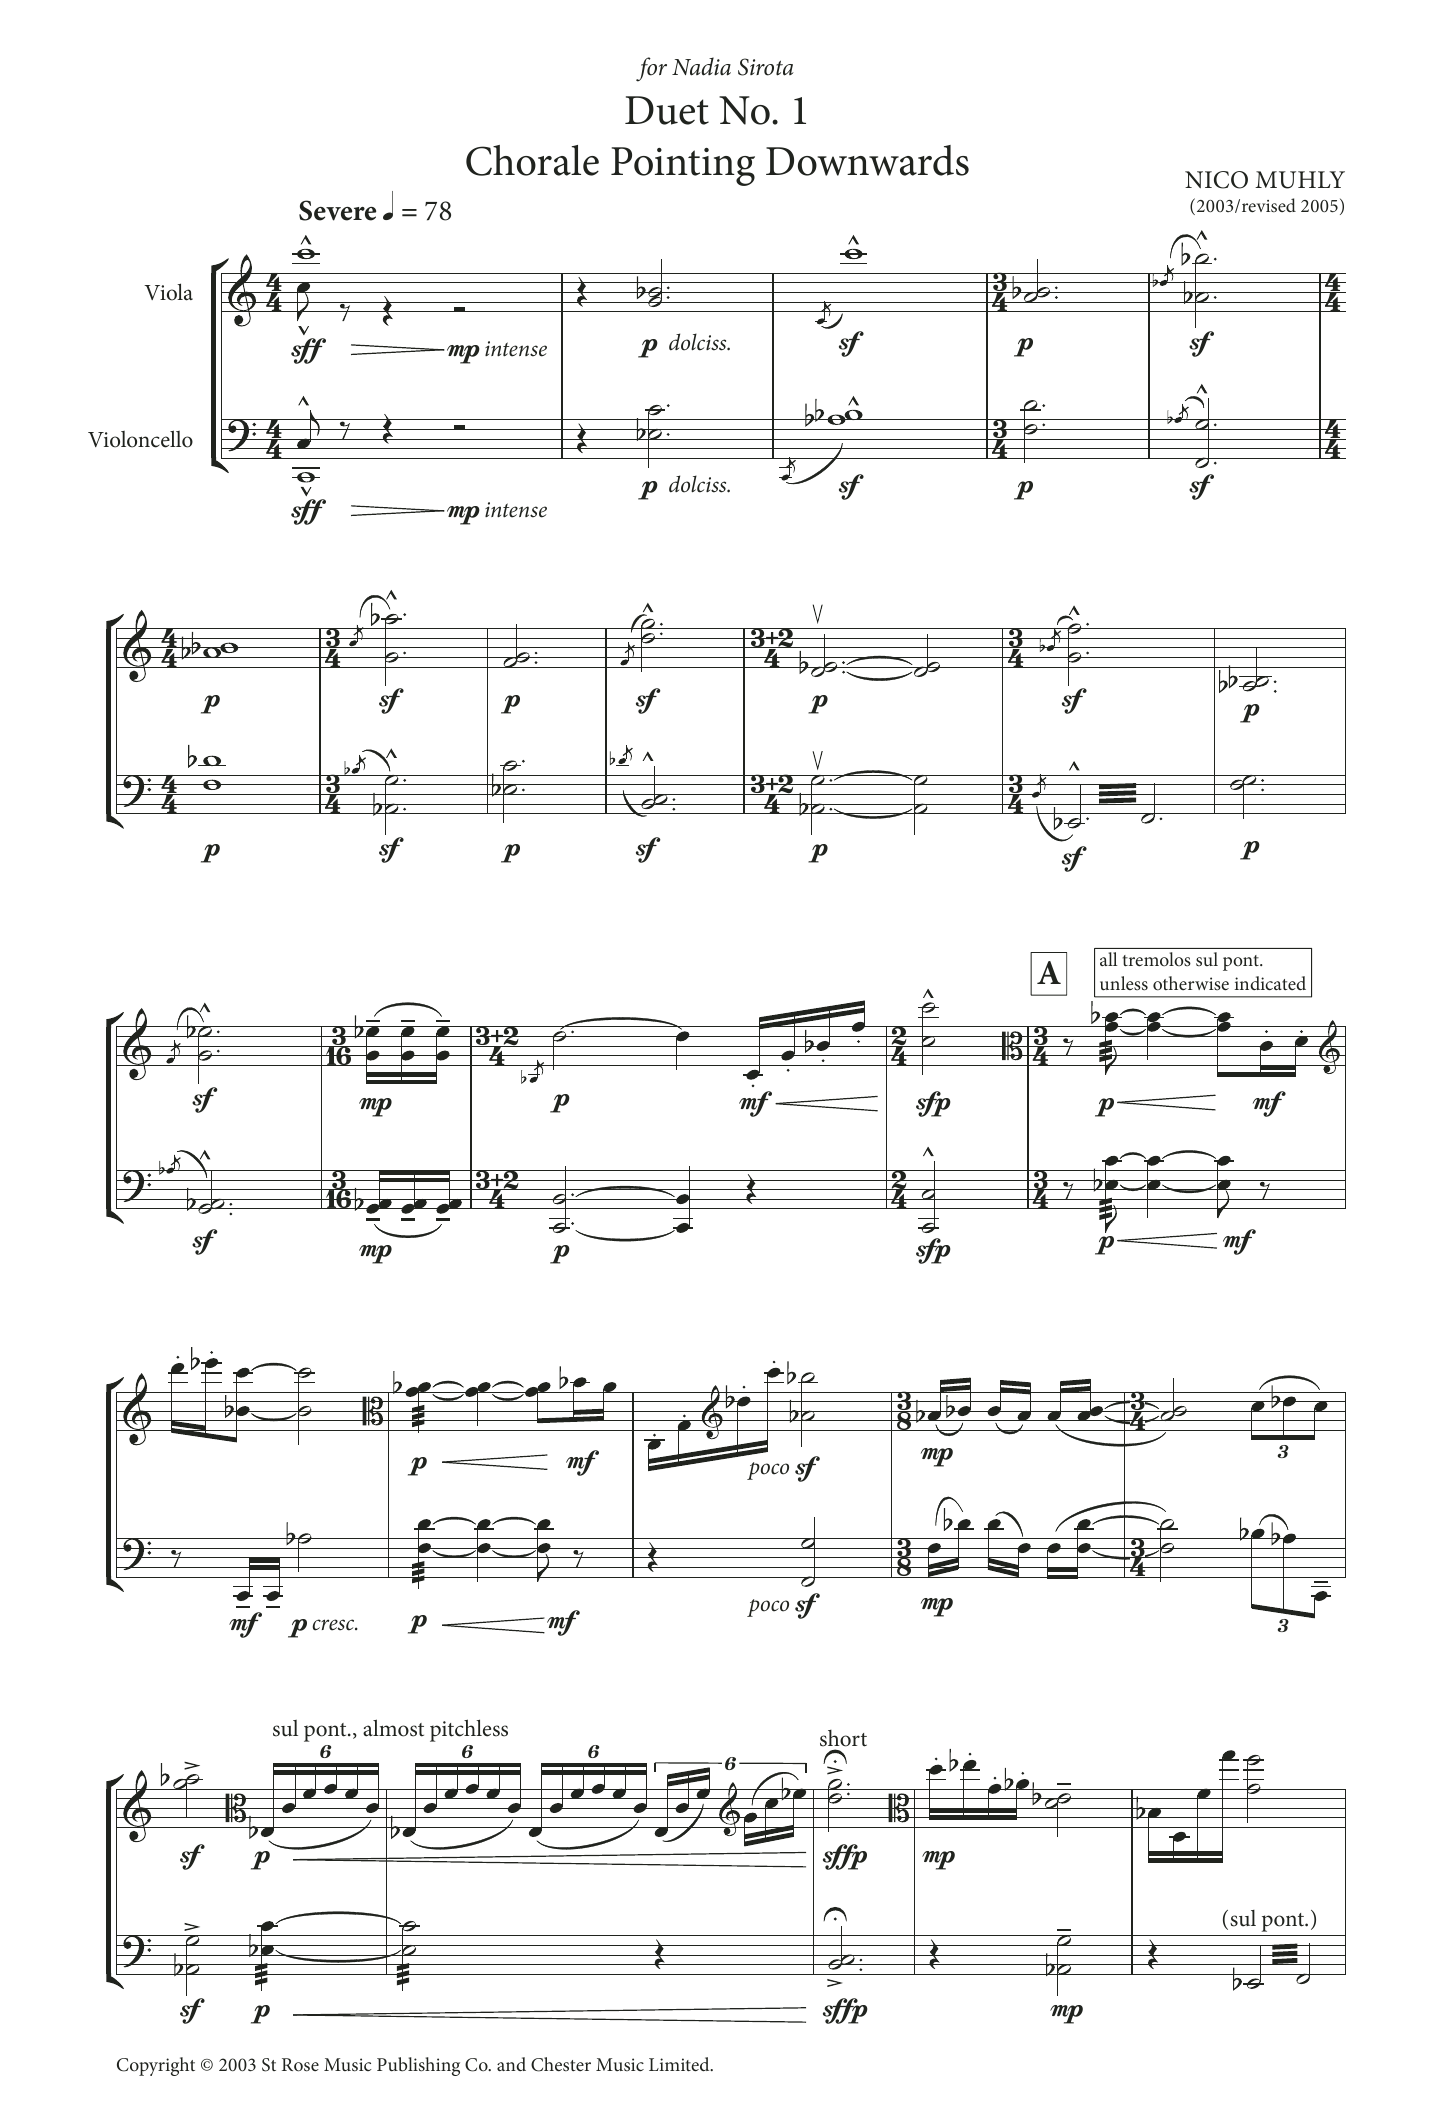 Nico Muhly: Duet No. 1 (Chorale Pointing Downwards) (for Viola and Cello)